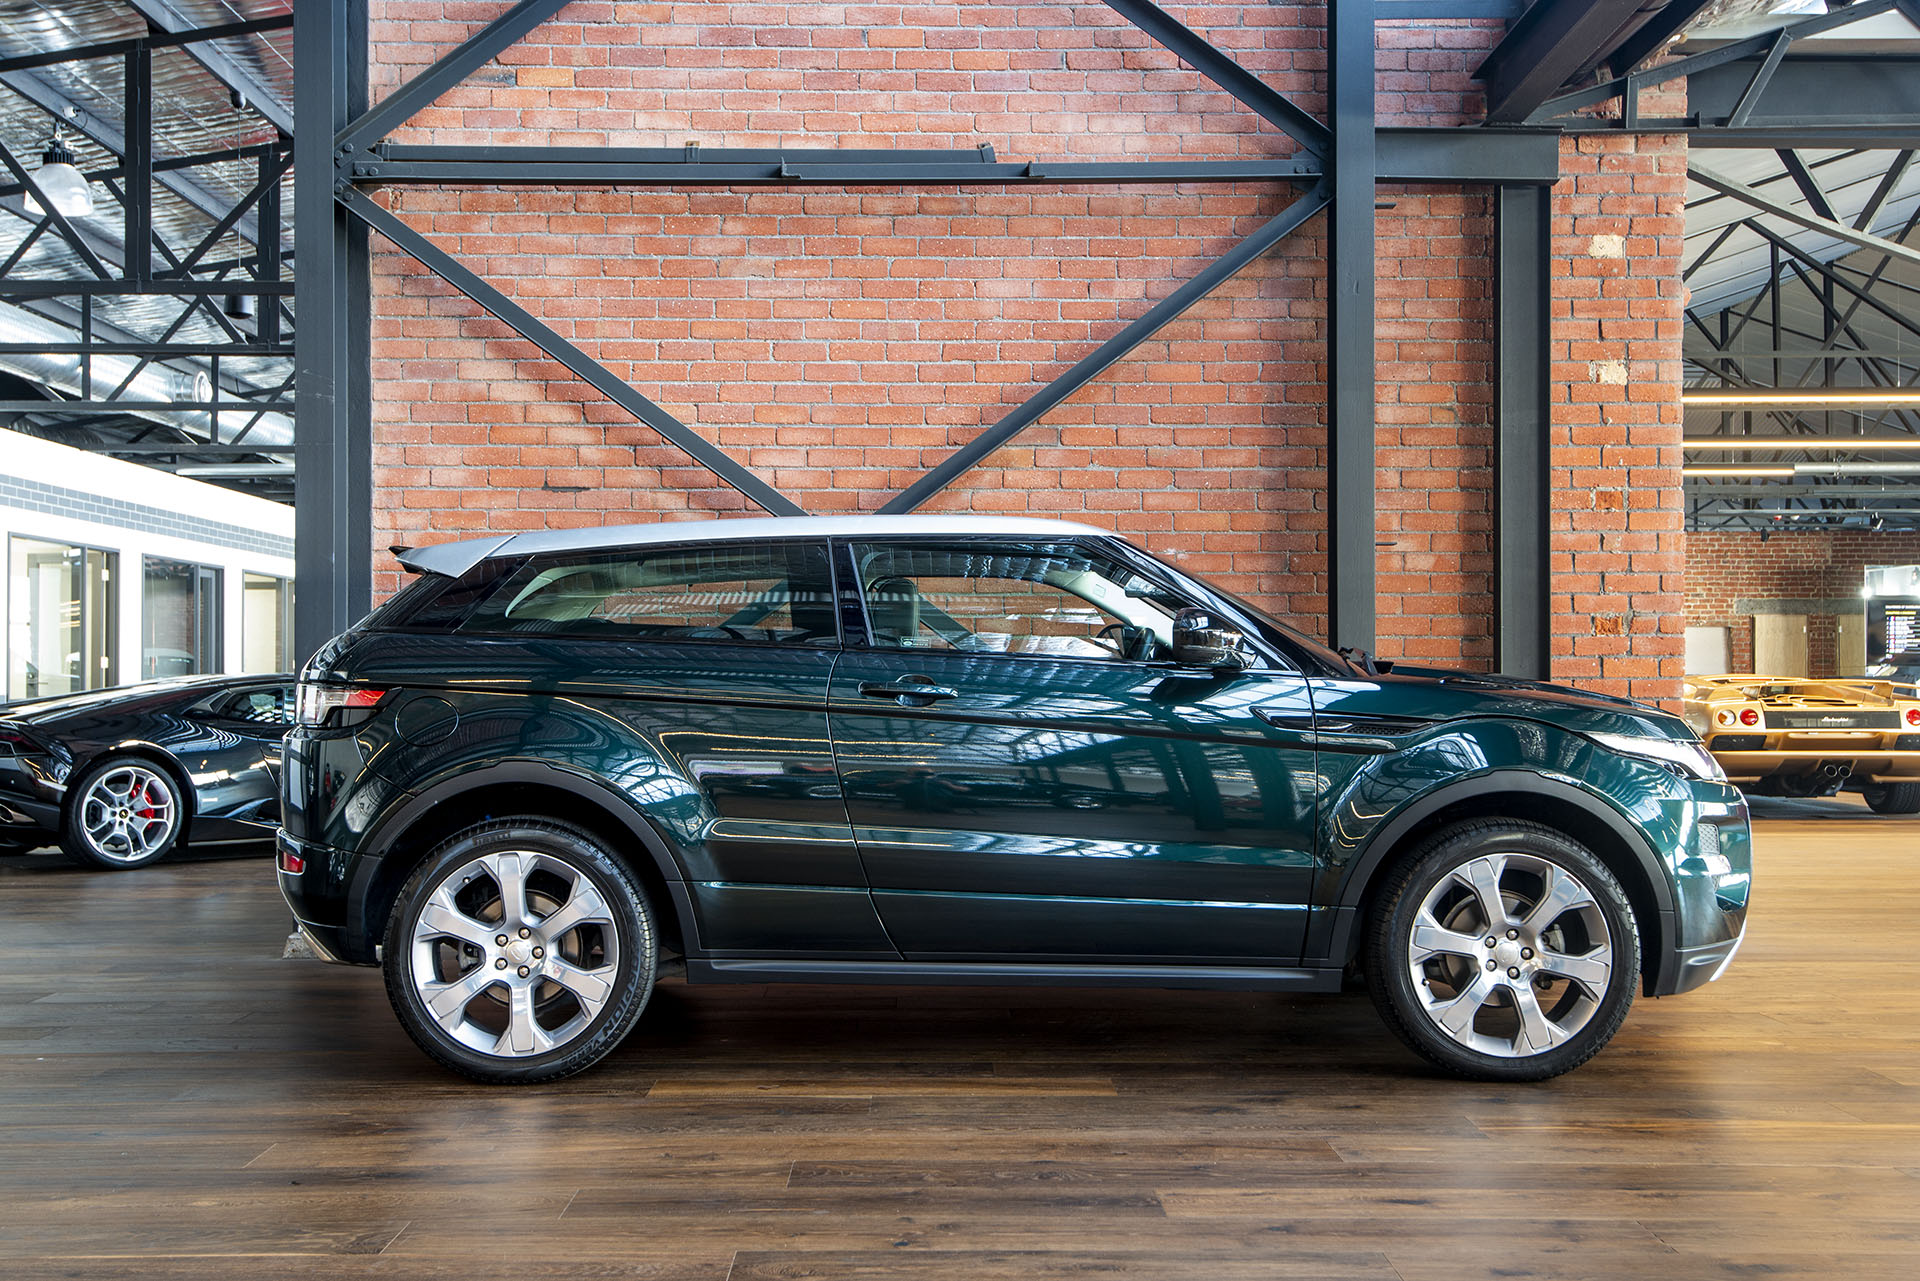 New Range Rover >> 2014 Land Rover Range Rover Evoque Coupe - Richmonds - Classic and Prestige Cars - Storage and ...